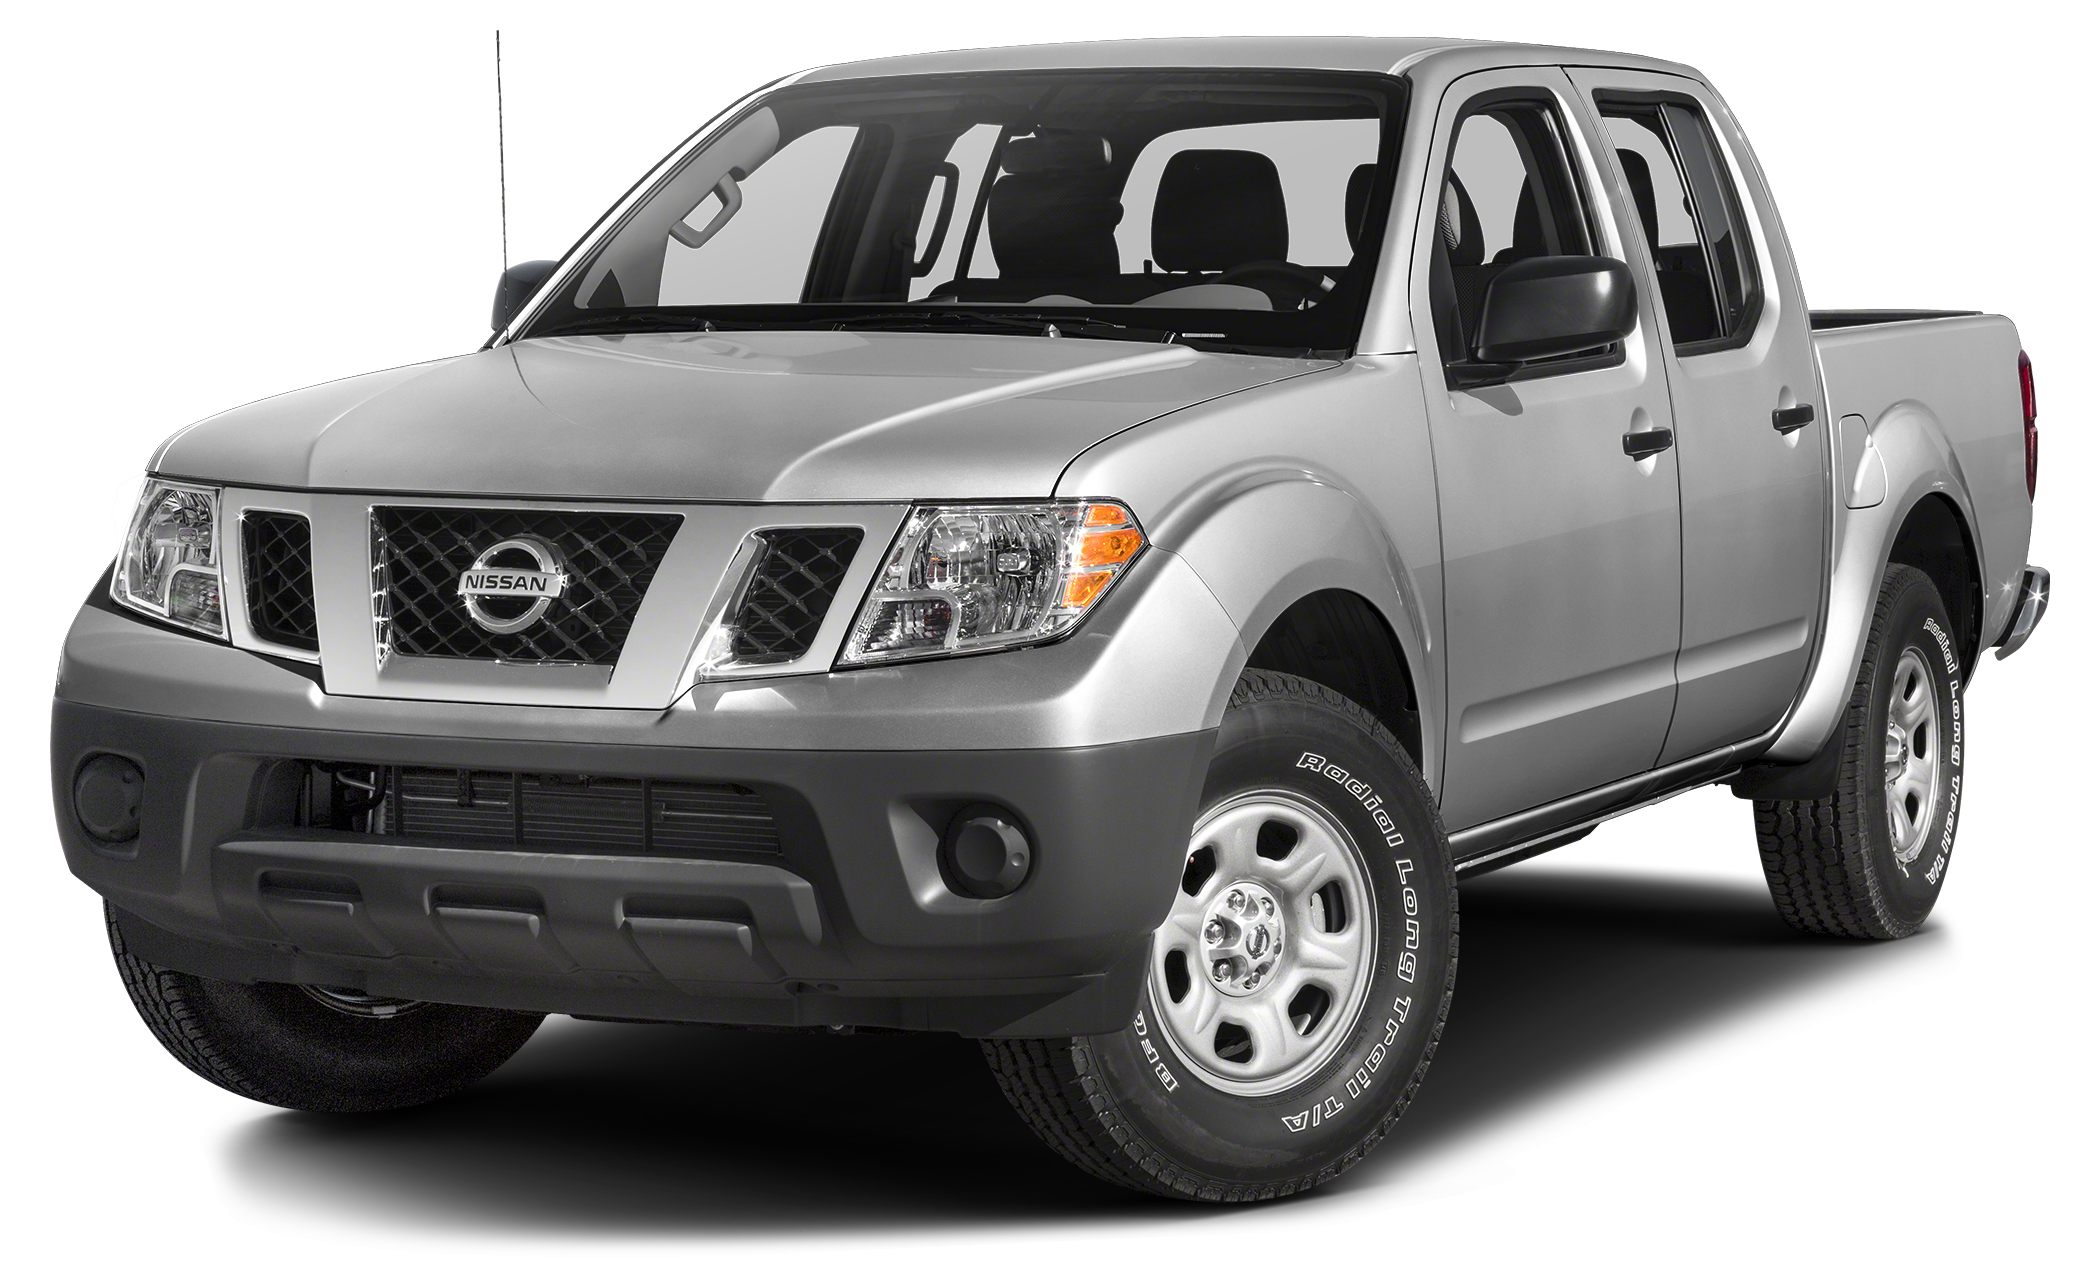 2015 Nissan Frontier S Prices are PLUS tax tag title fee 799 Pre-Delivery Service Fee and 1